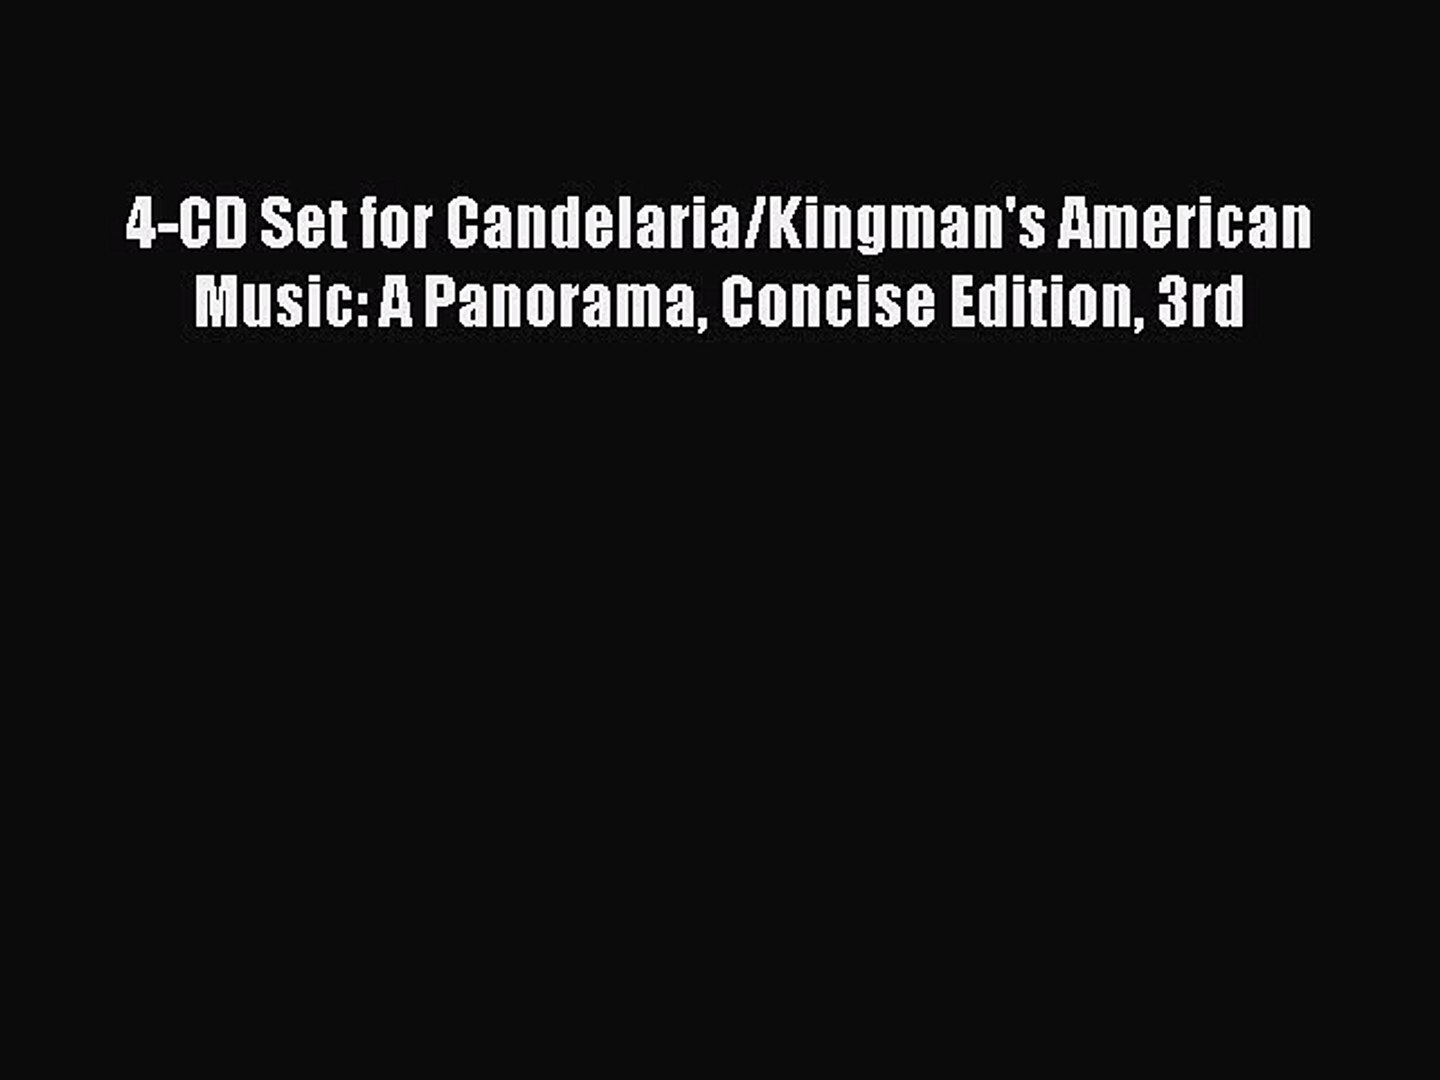 Read 4-CD Set for Candelaria/Kingman's American Music: A Panorama Concise Edition 3rd Ebook